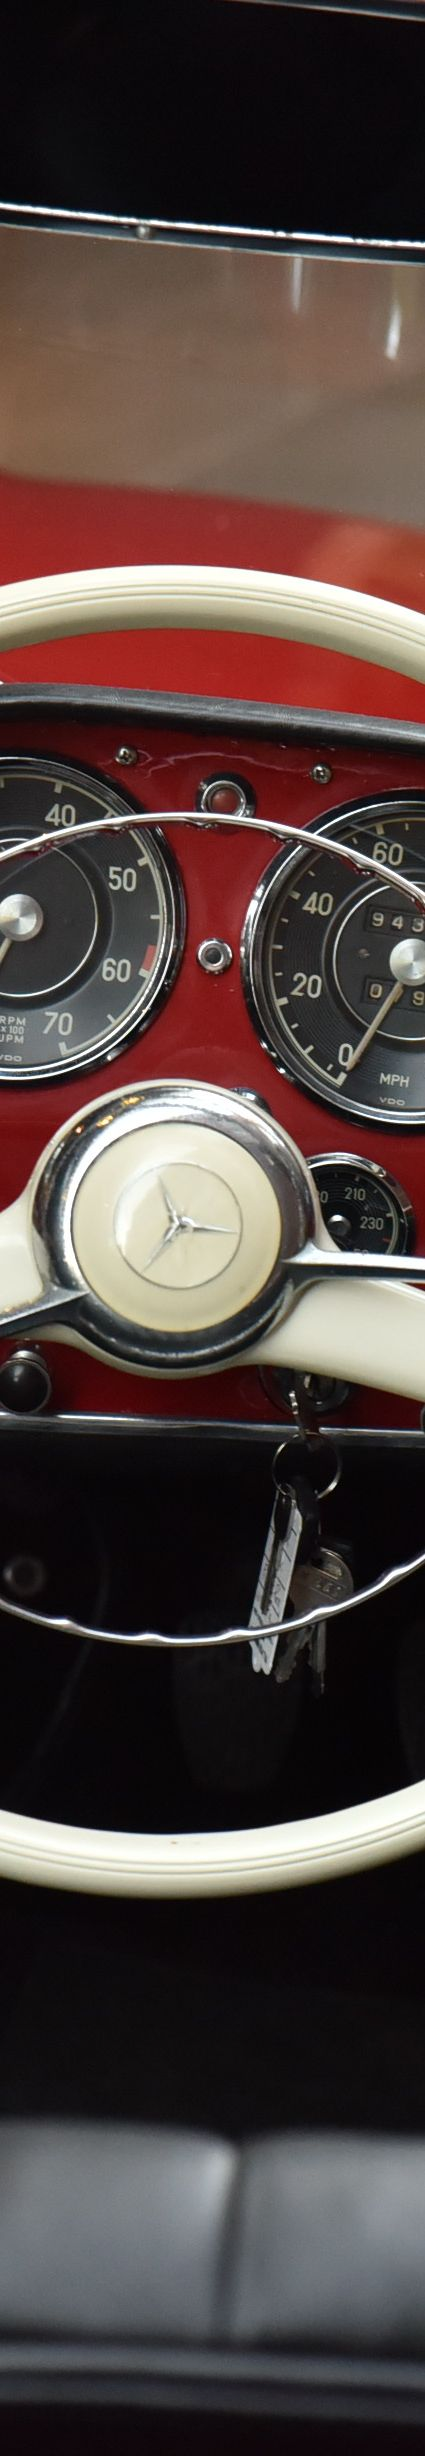 1960 Mercedes Benz 190 SL - for sale in Australia